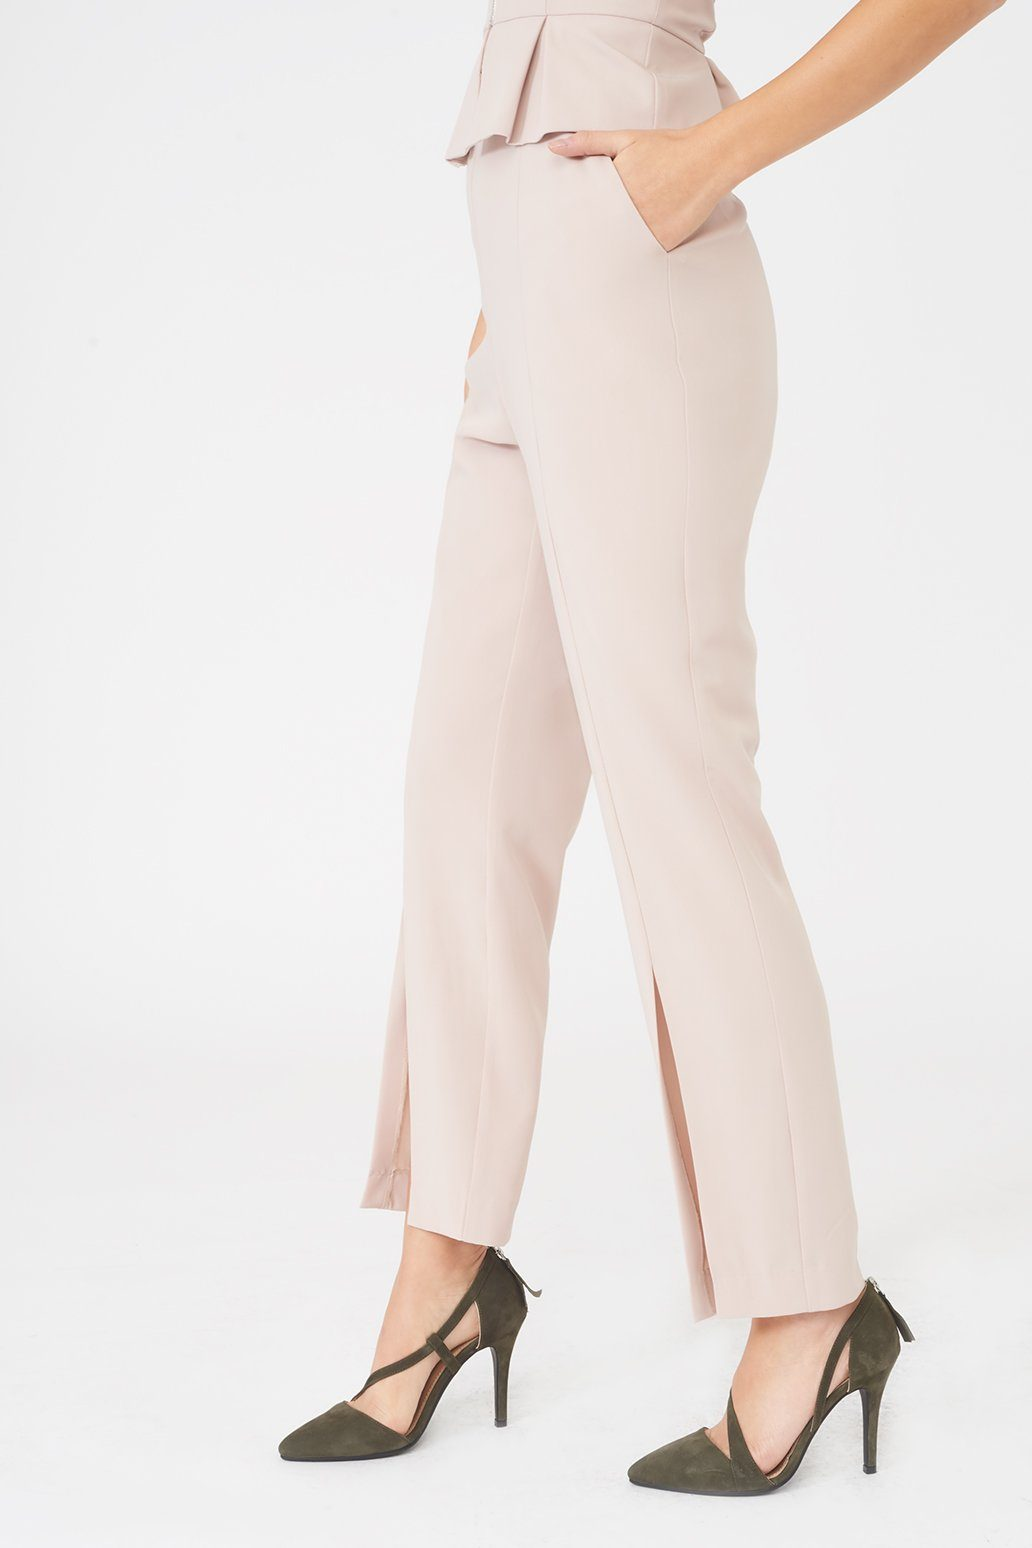 Tapered Trouser with Front Split in Nude